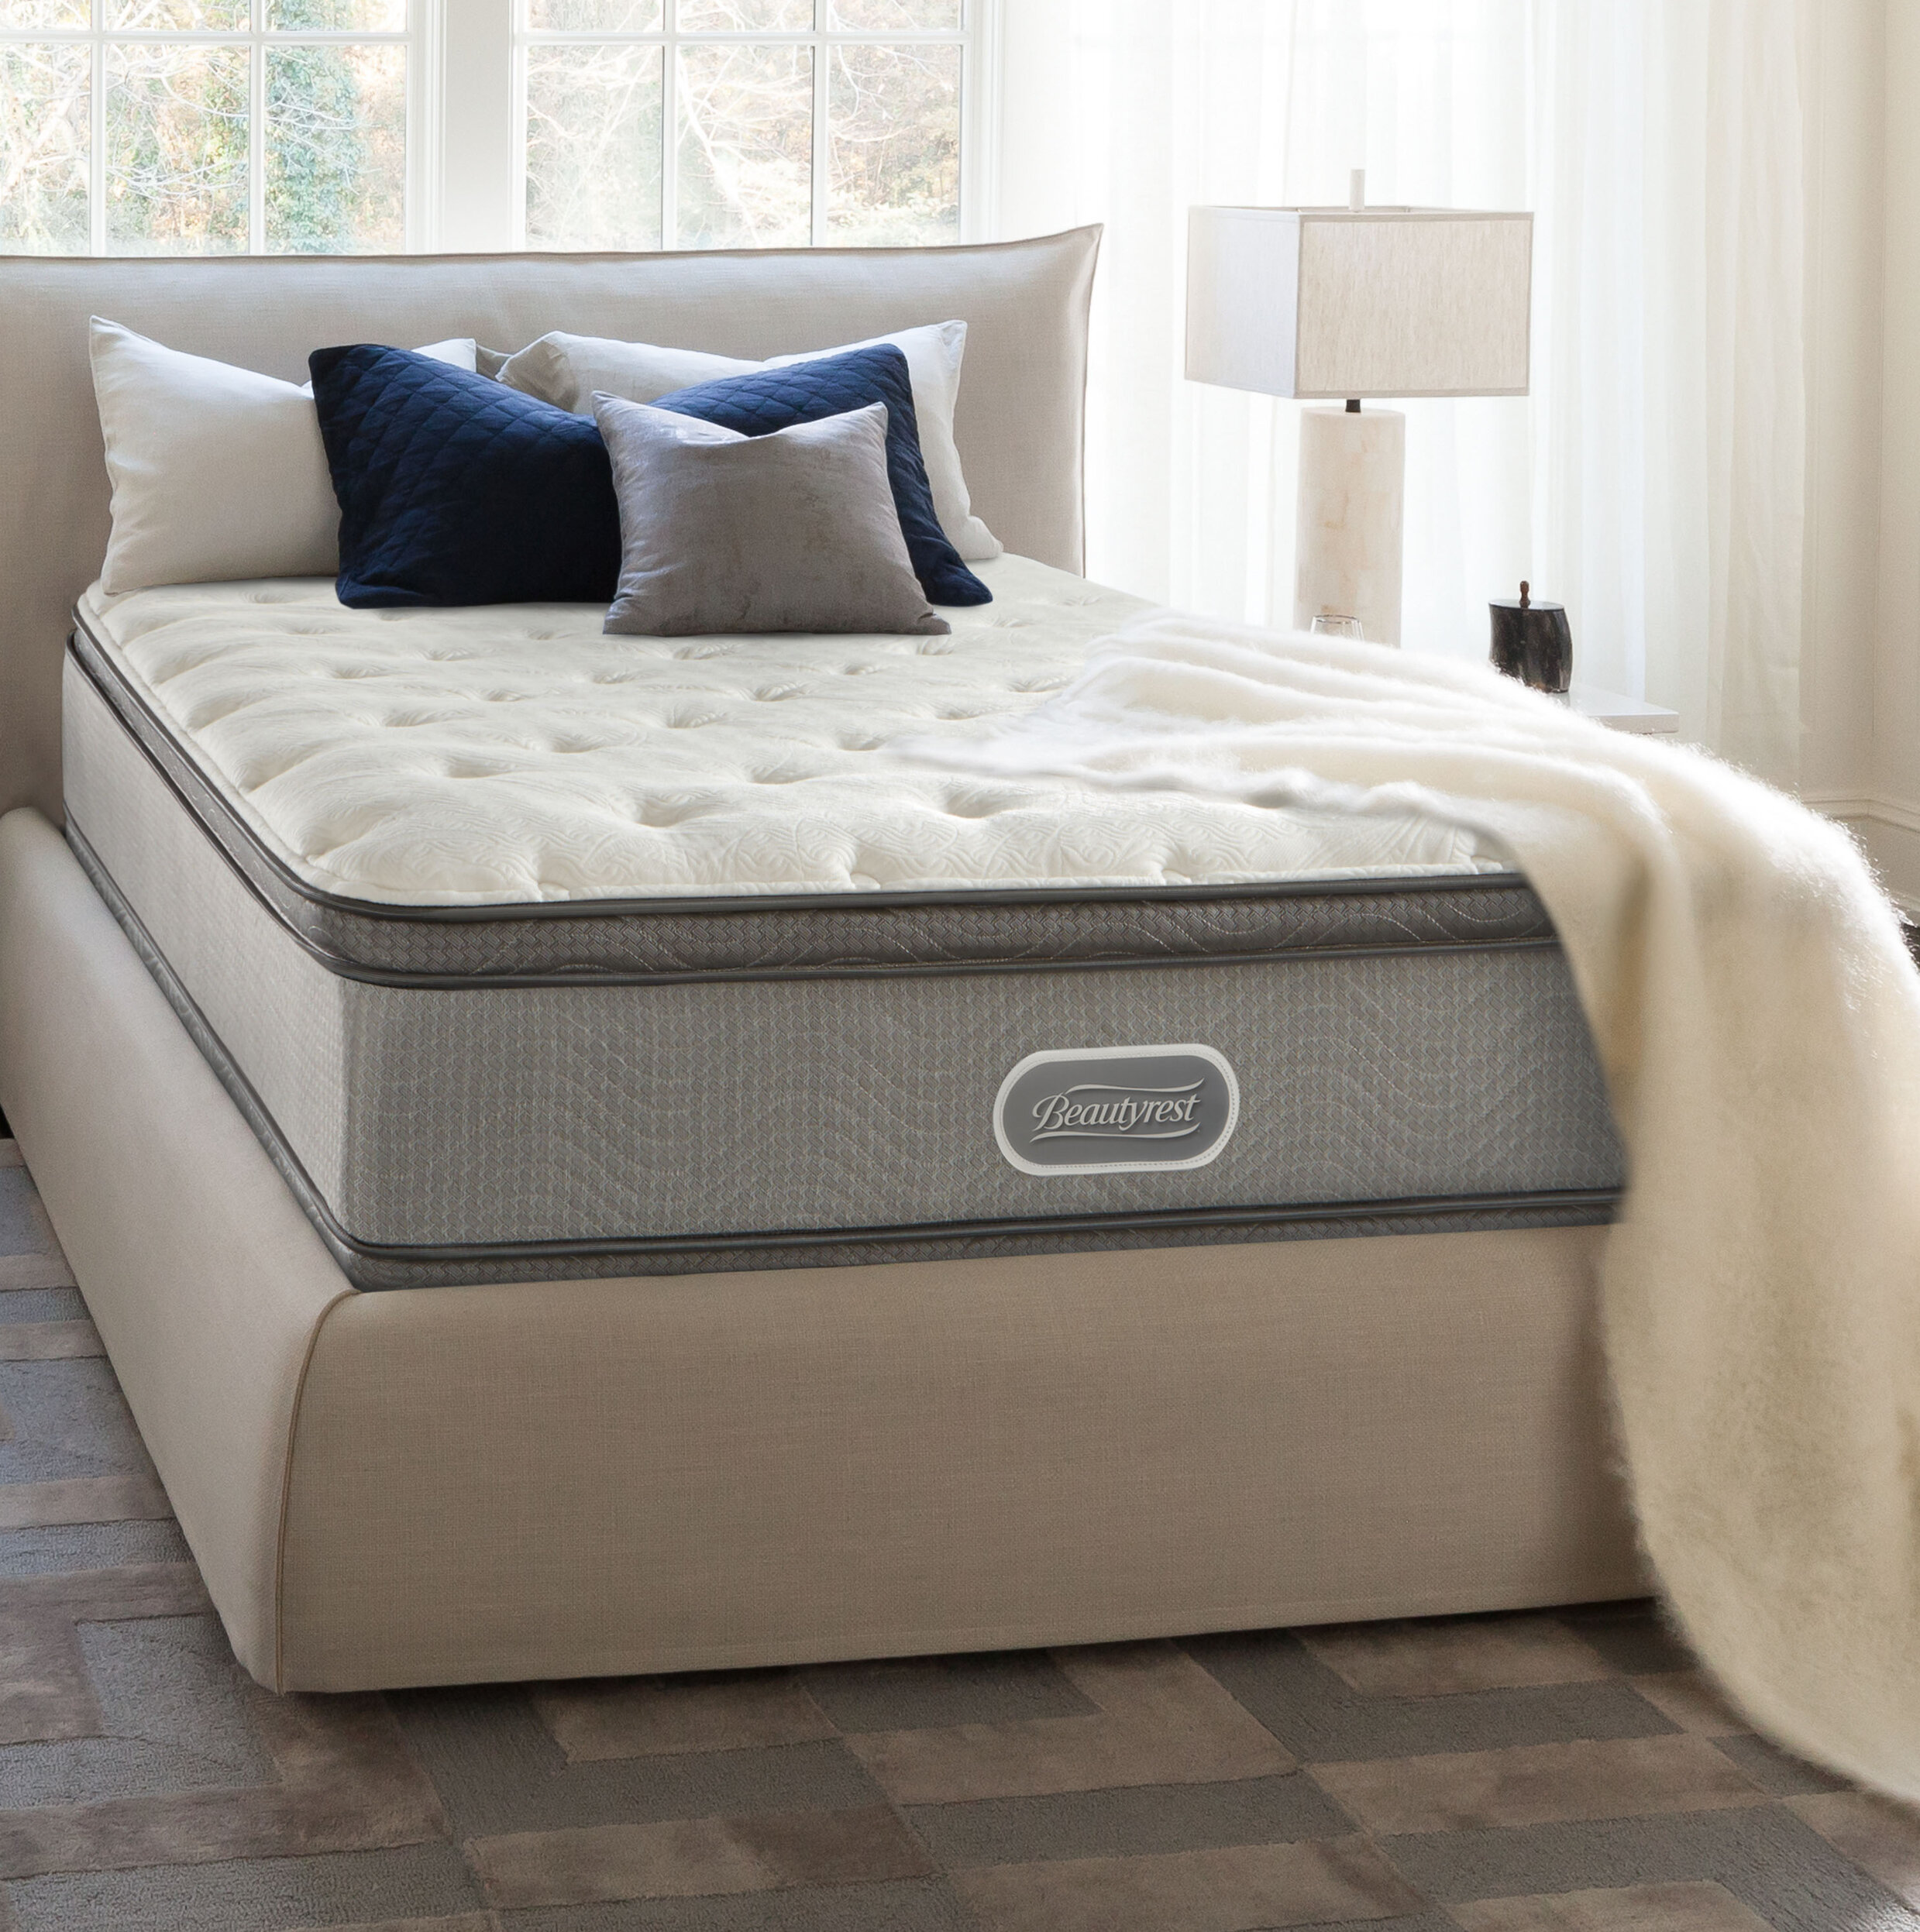 shop city mattress pillow beautysleep top silo topper simmons valley plpt plush sun sleep q